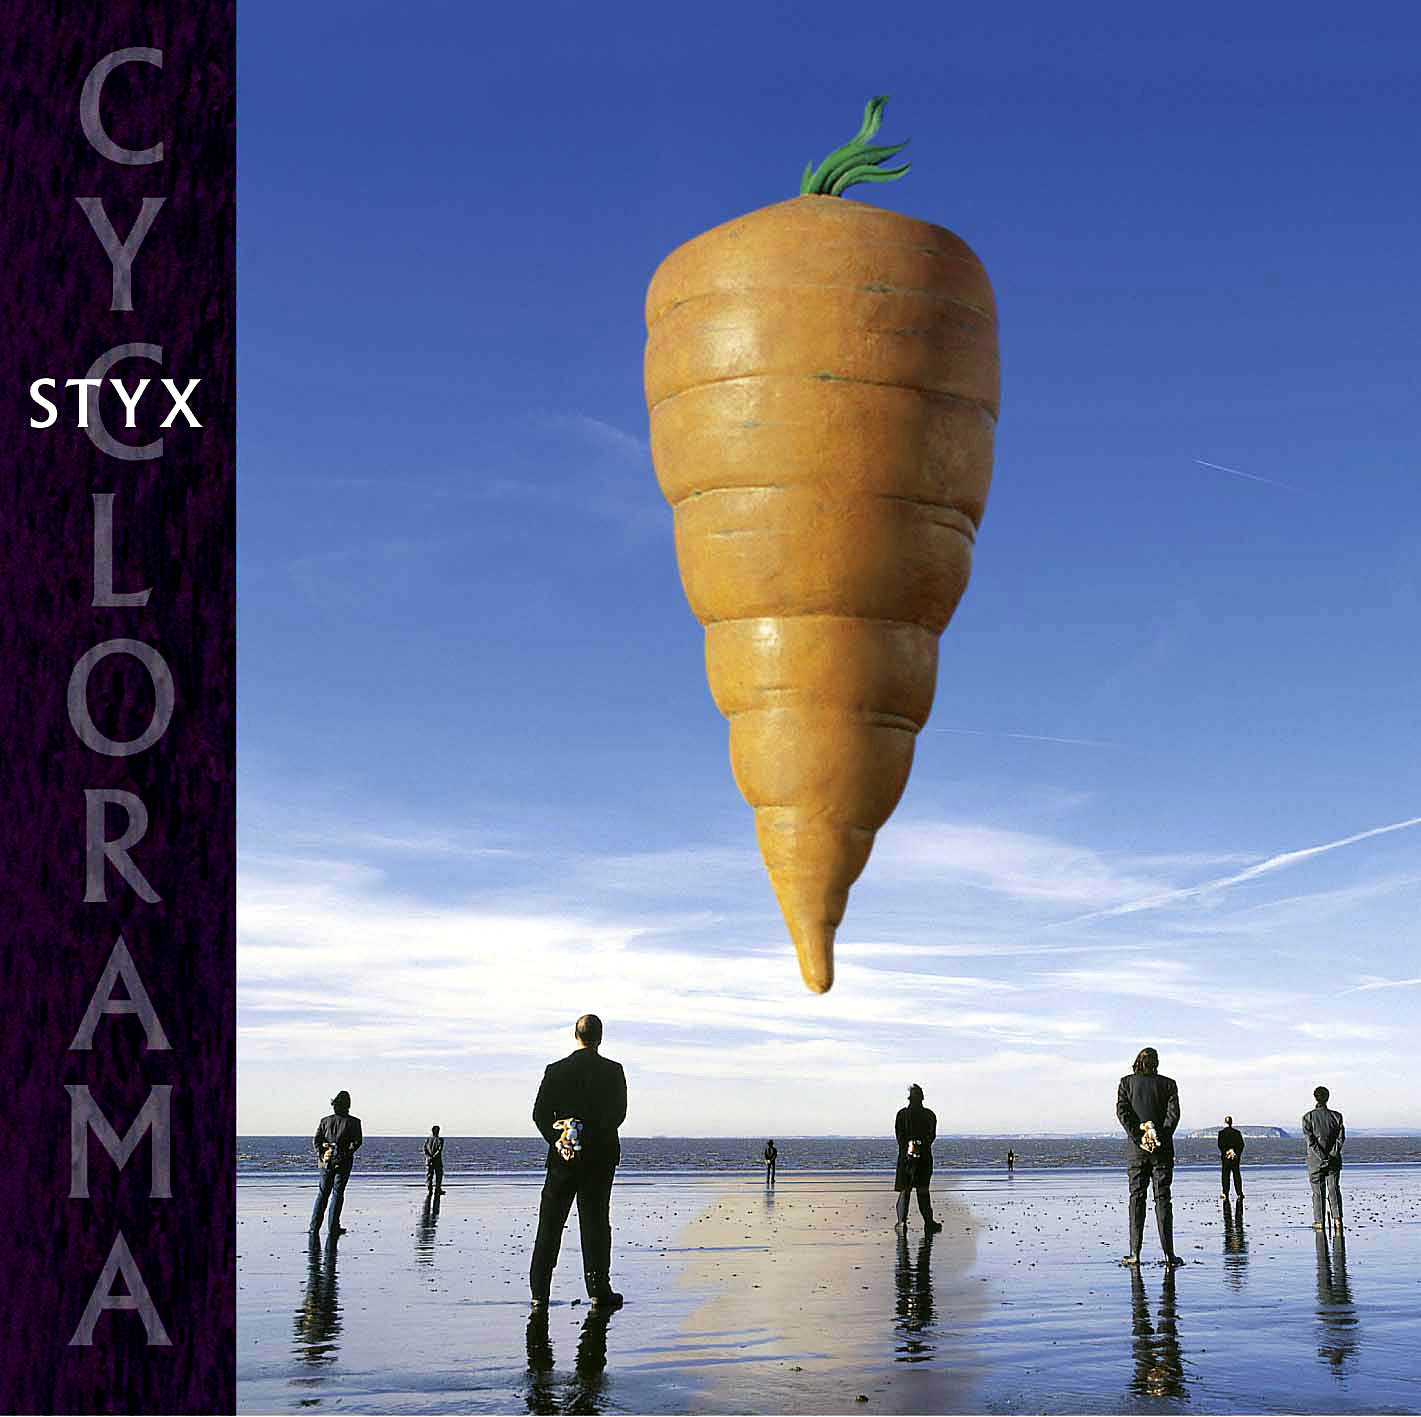 Cyclorama cover